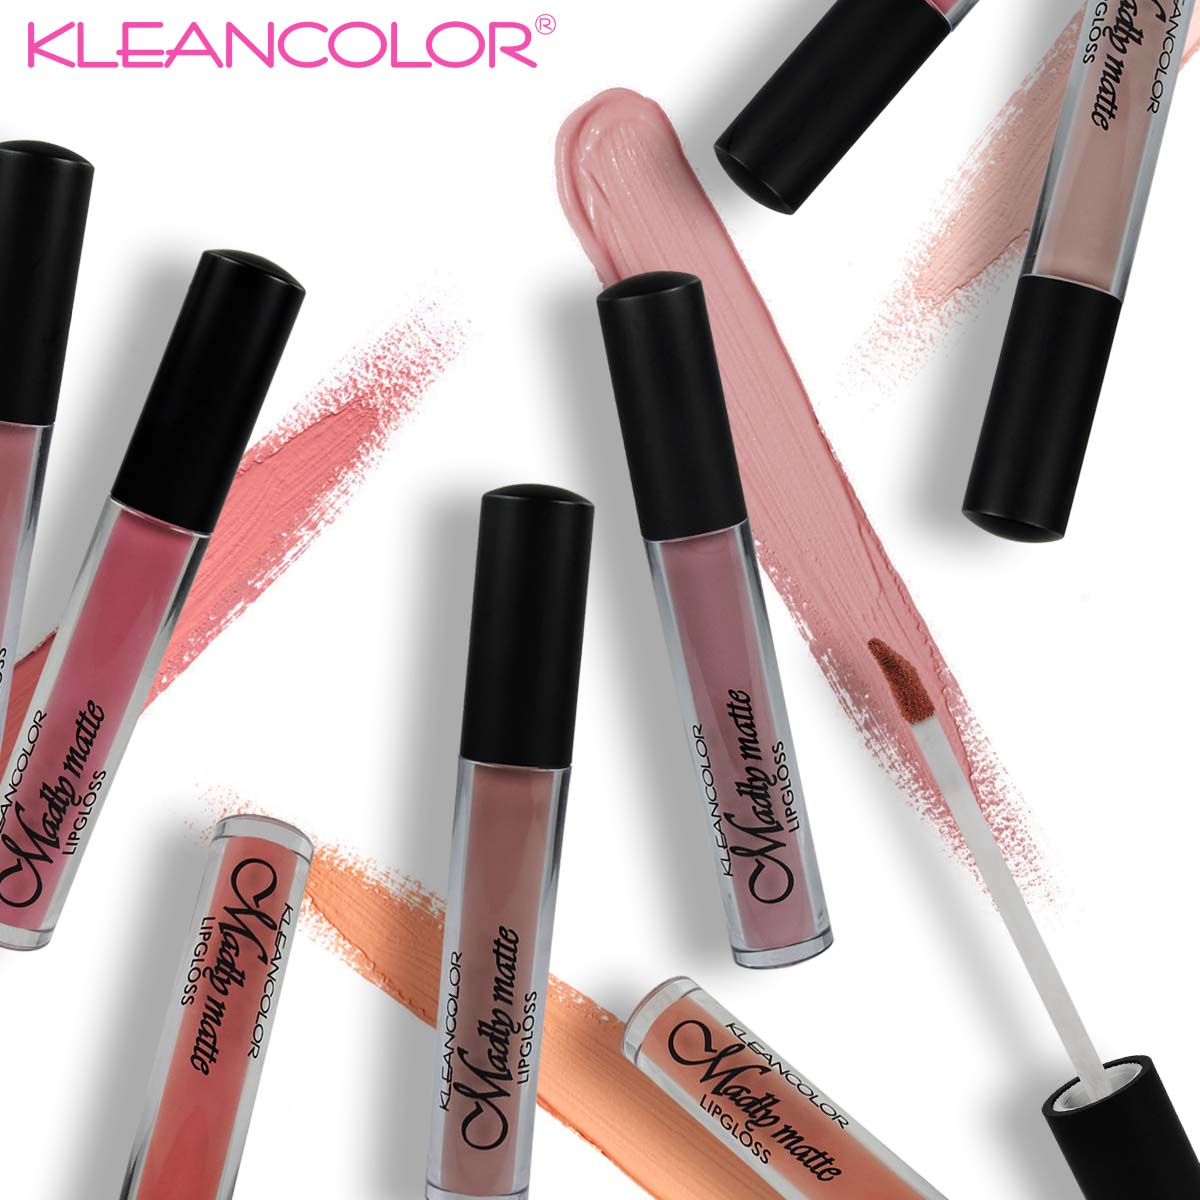 Get away with a steal - Madly Matte Lip Glosses on http://kleancolor